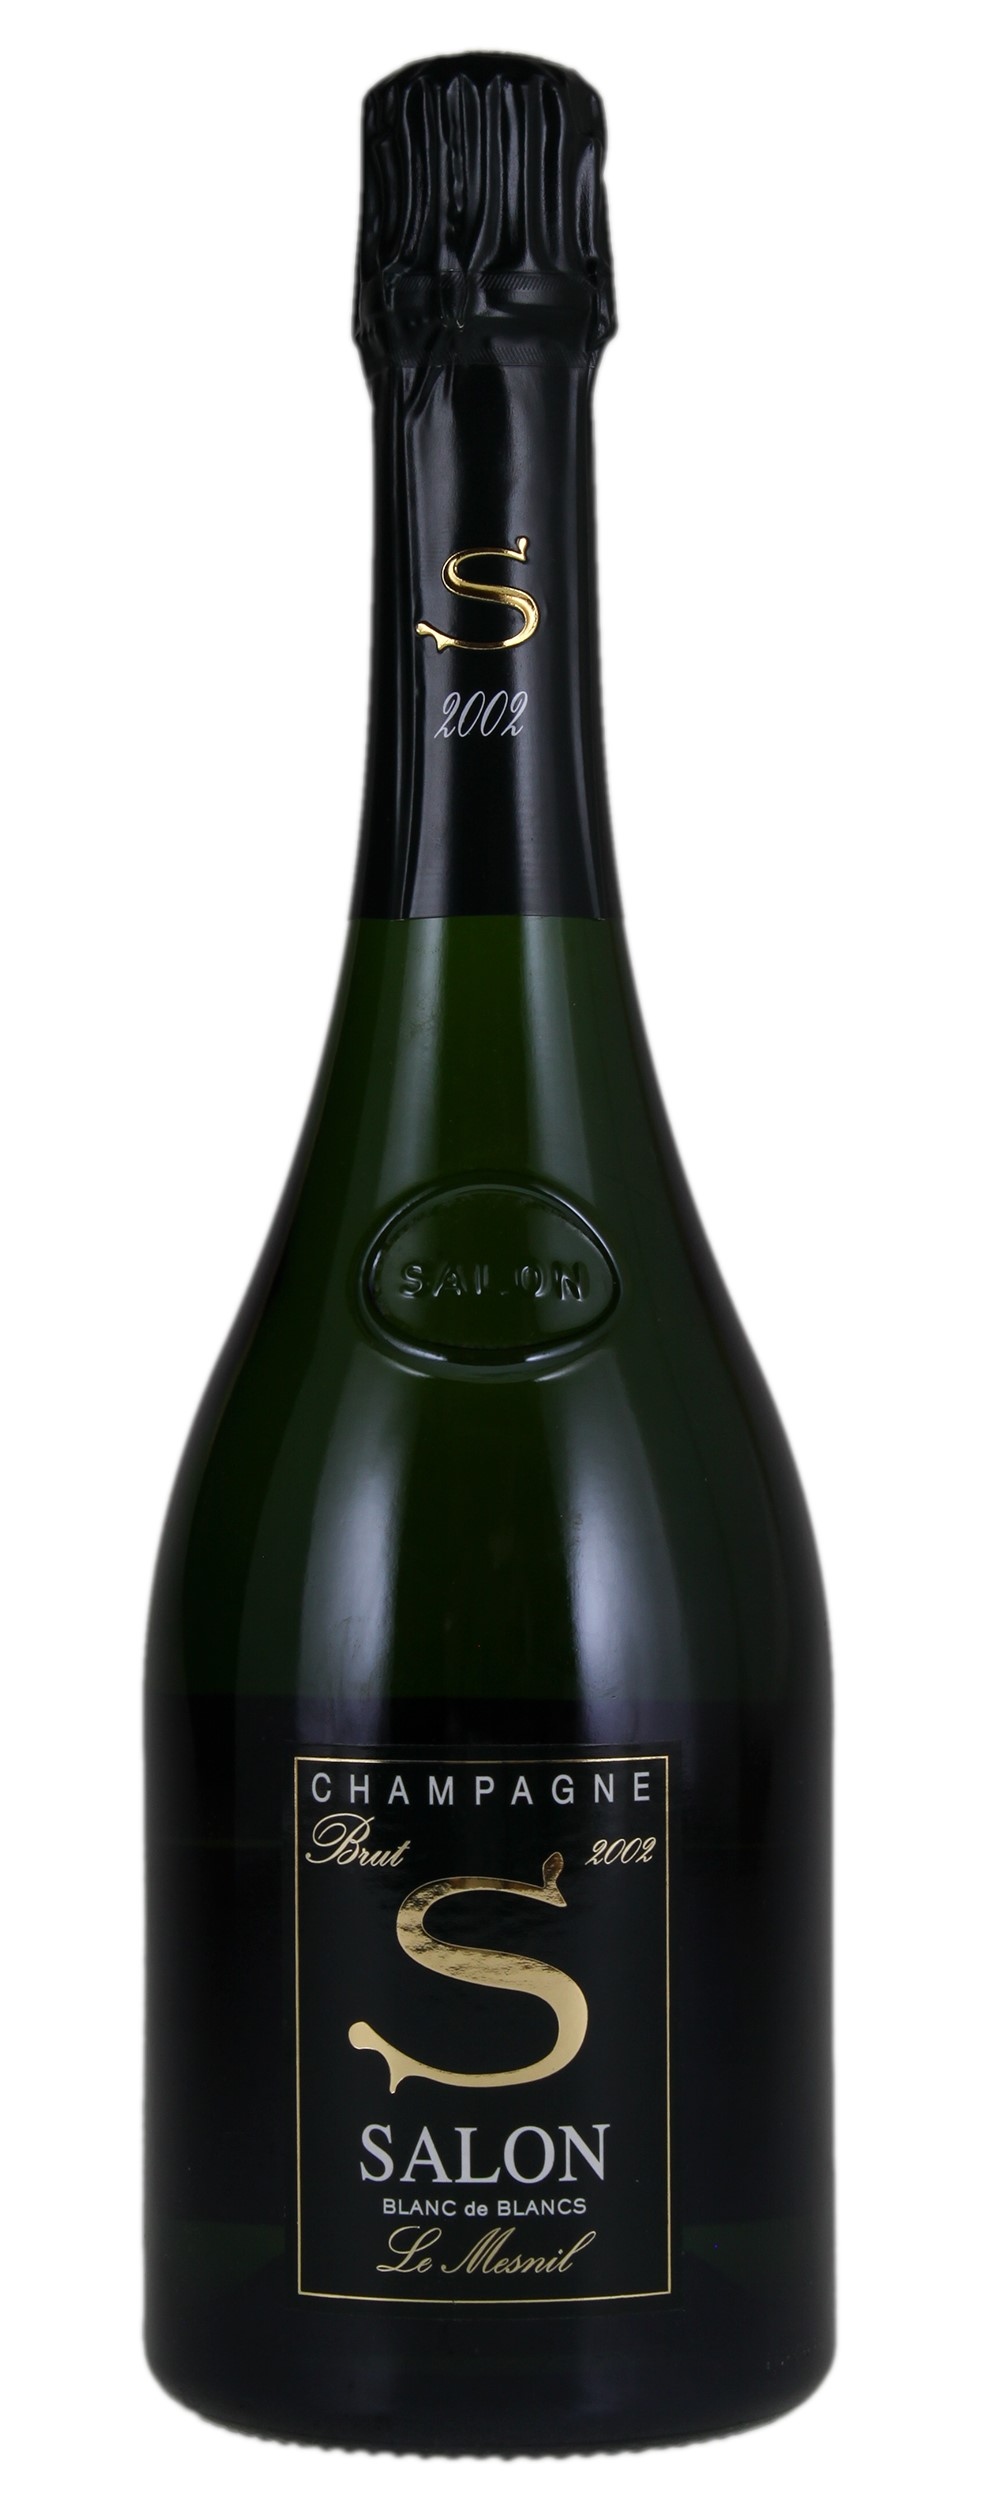 Salon Le Mesnil Blanc de Blancs 2002, Sparkling from France ...